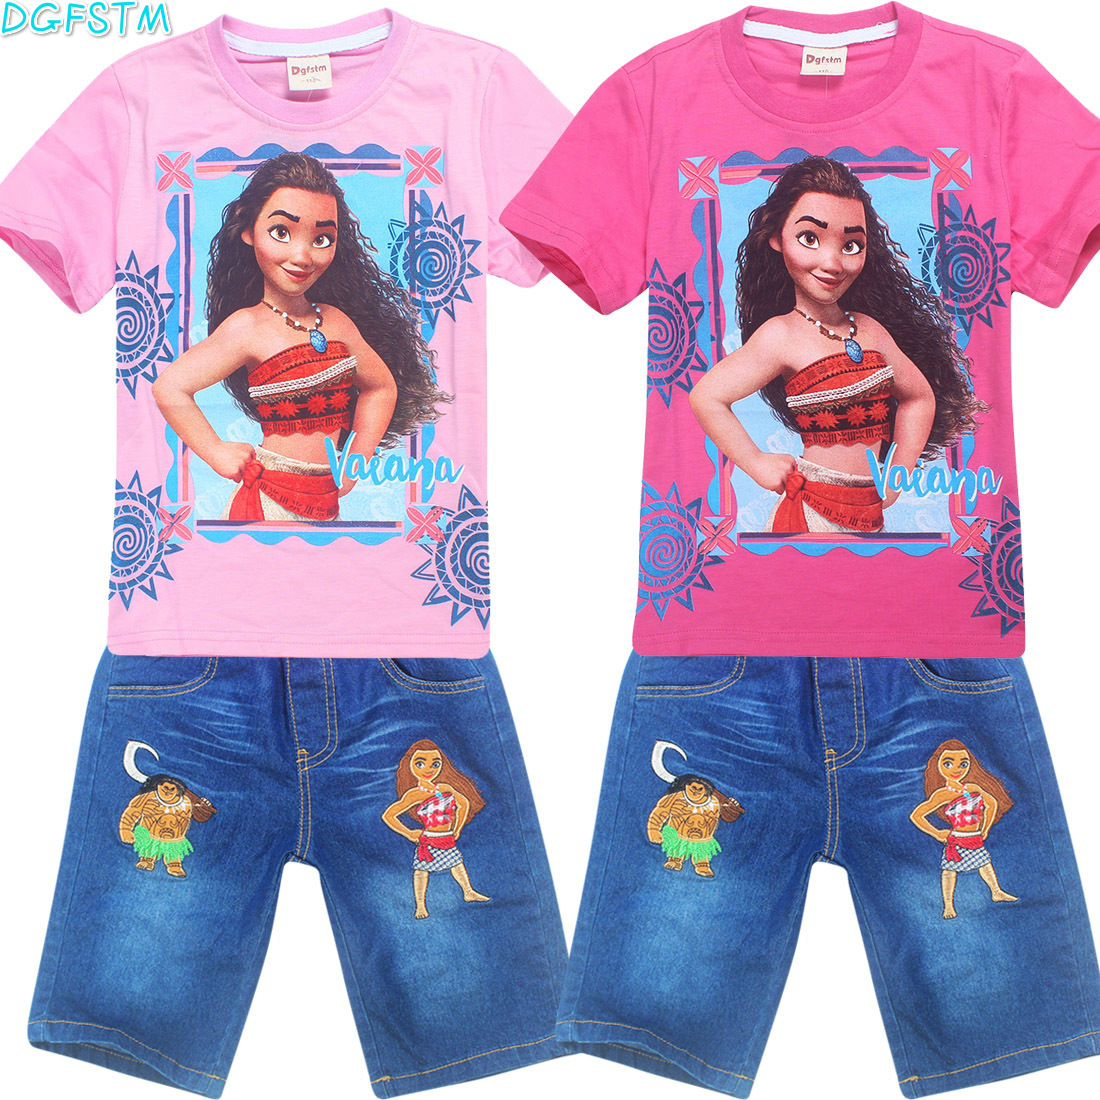 Childrens wear 2017 autumn summer baby girl Vaiana sports leisure suit Moana T-shirt +jeans trousers two pcs Childrens clothes ...